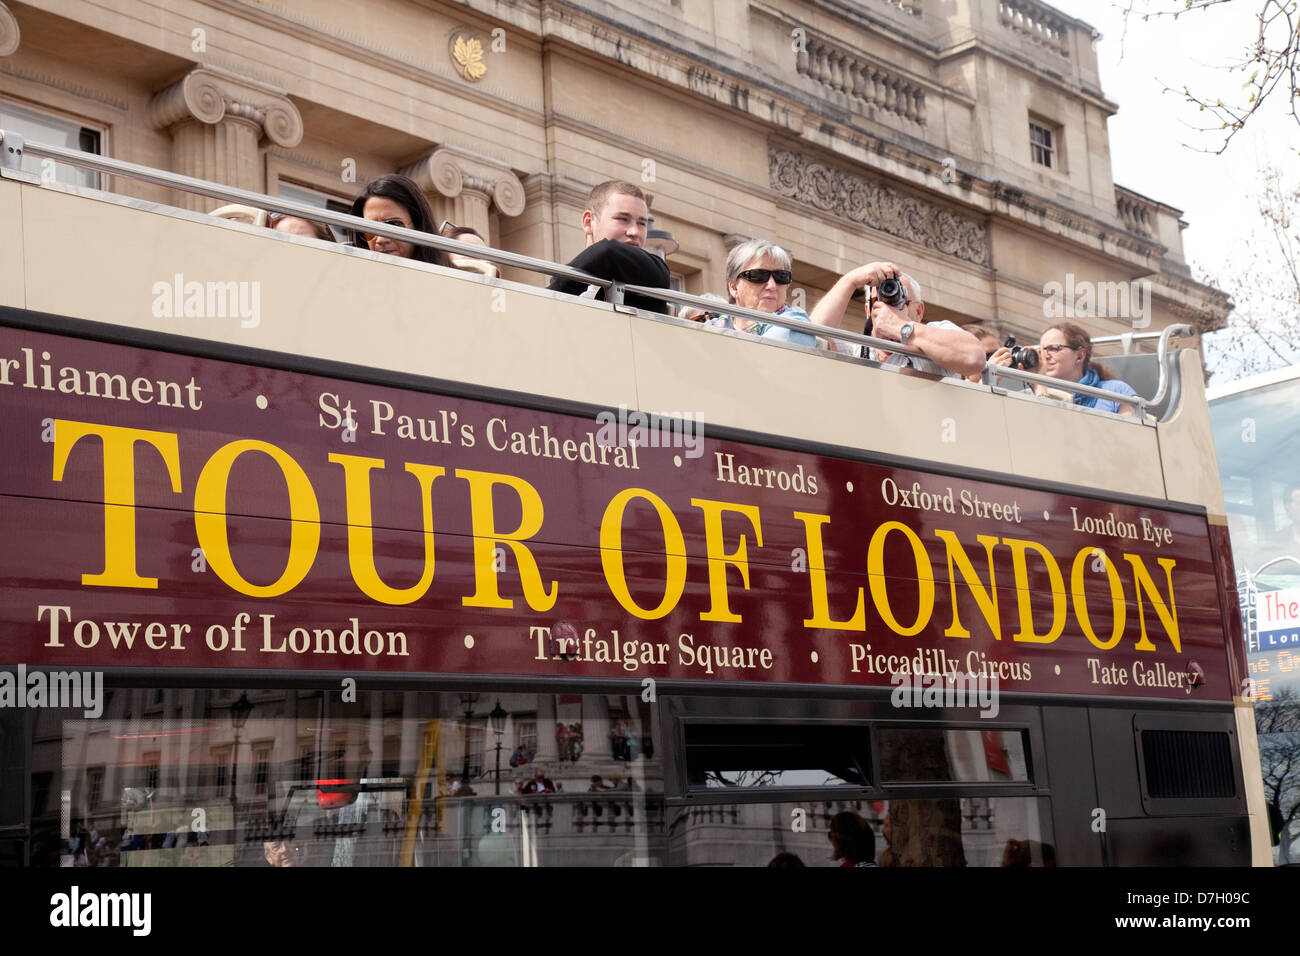 Tour of London sightseeing bus trip with tourists on the top deck, London England UK - Stock Image